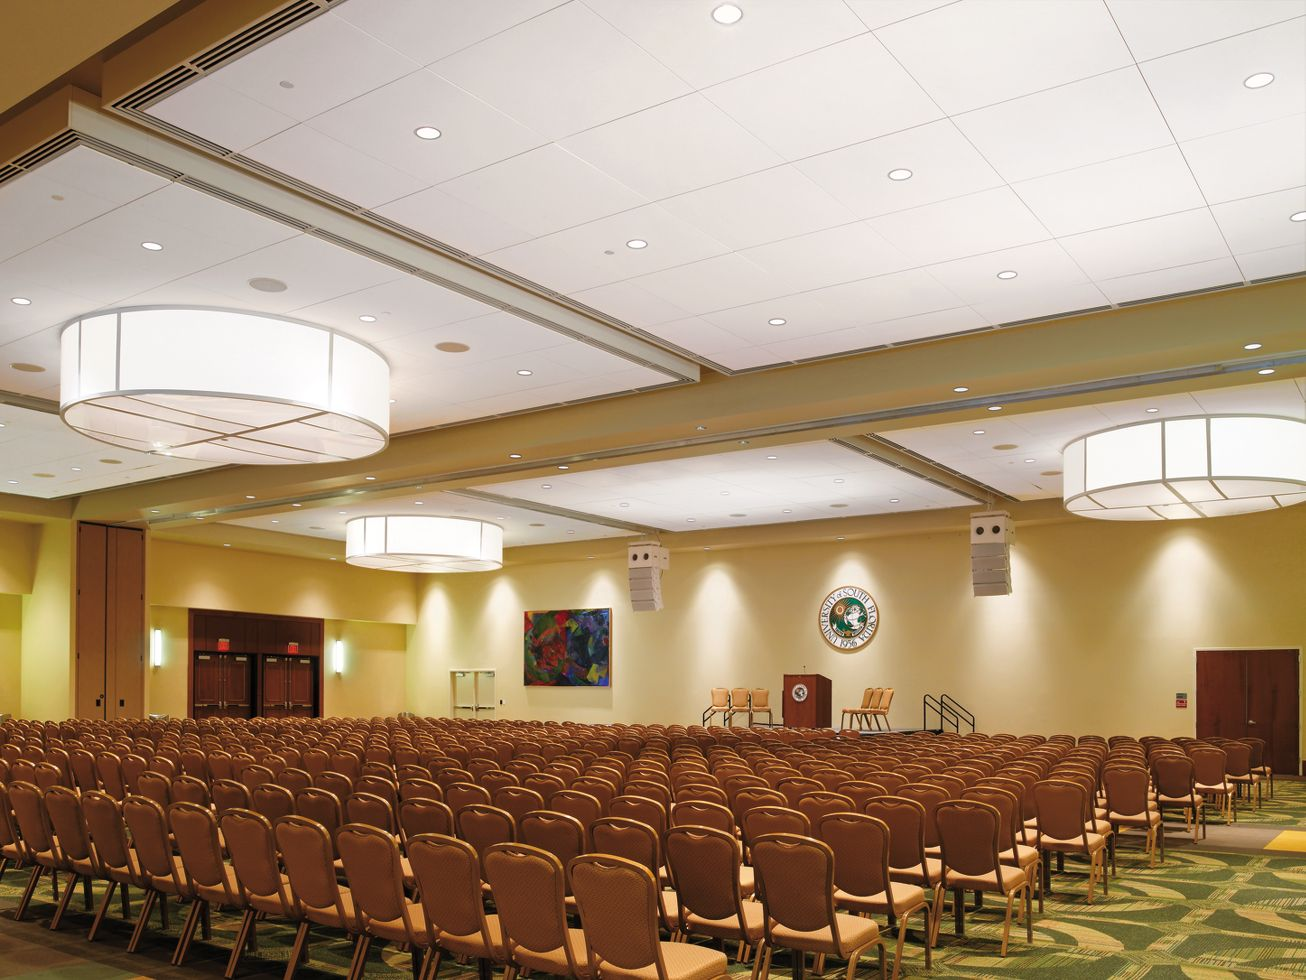 University of South Florida, Marshall Student Center